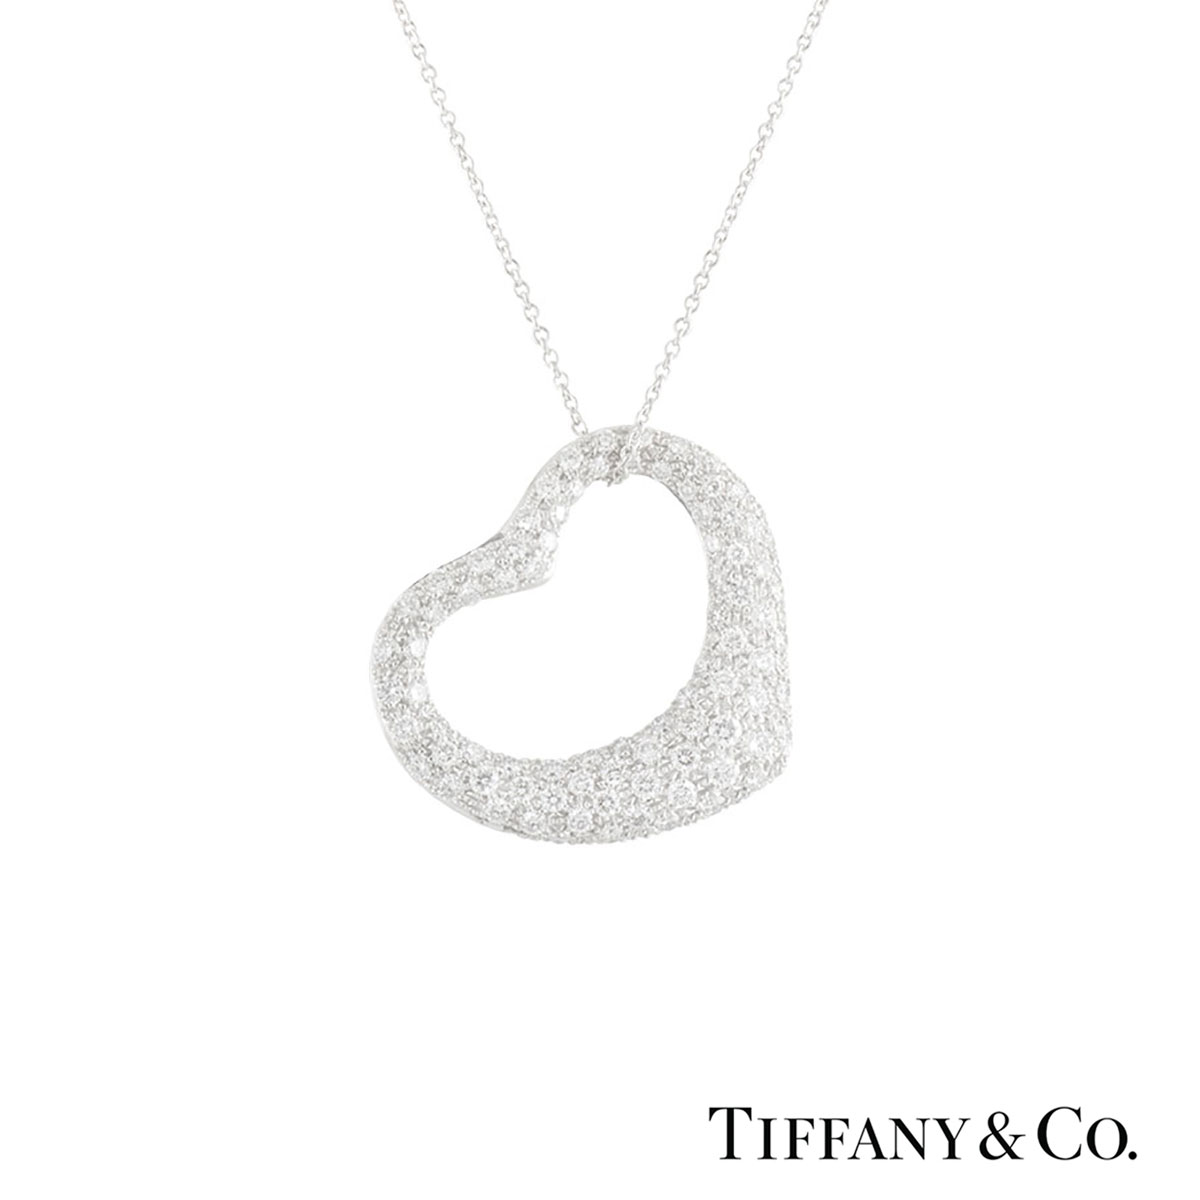 Tiffany & Co. Platinum Diamond Elsa Peretti Necklace 2.00ct G/VS